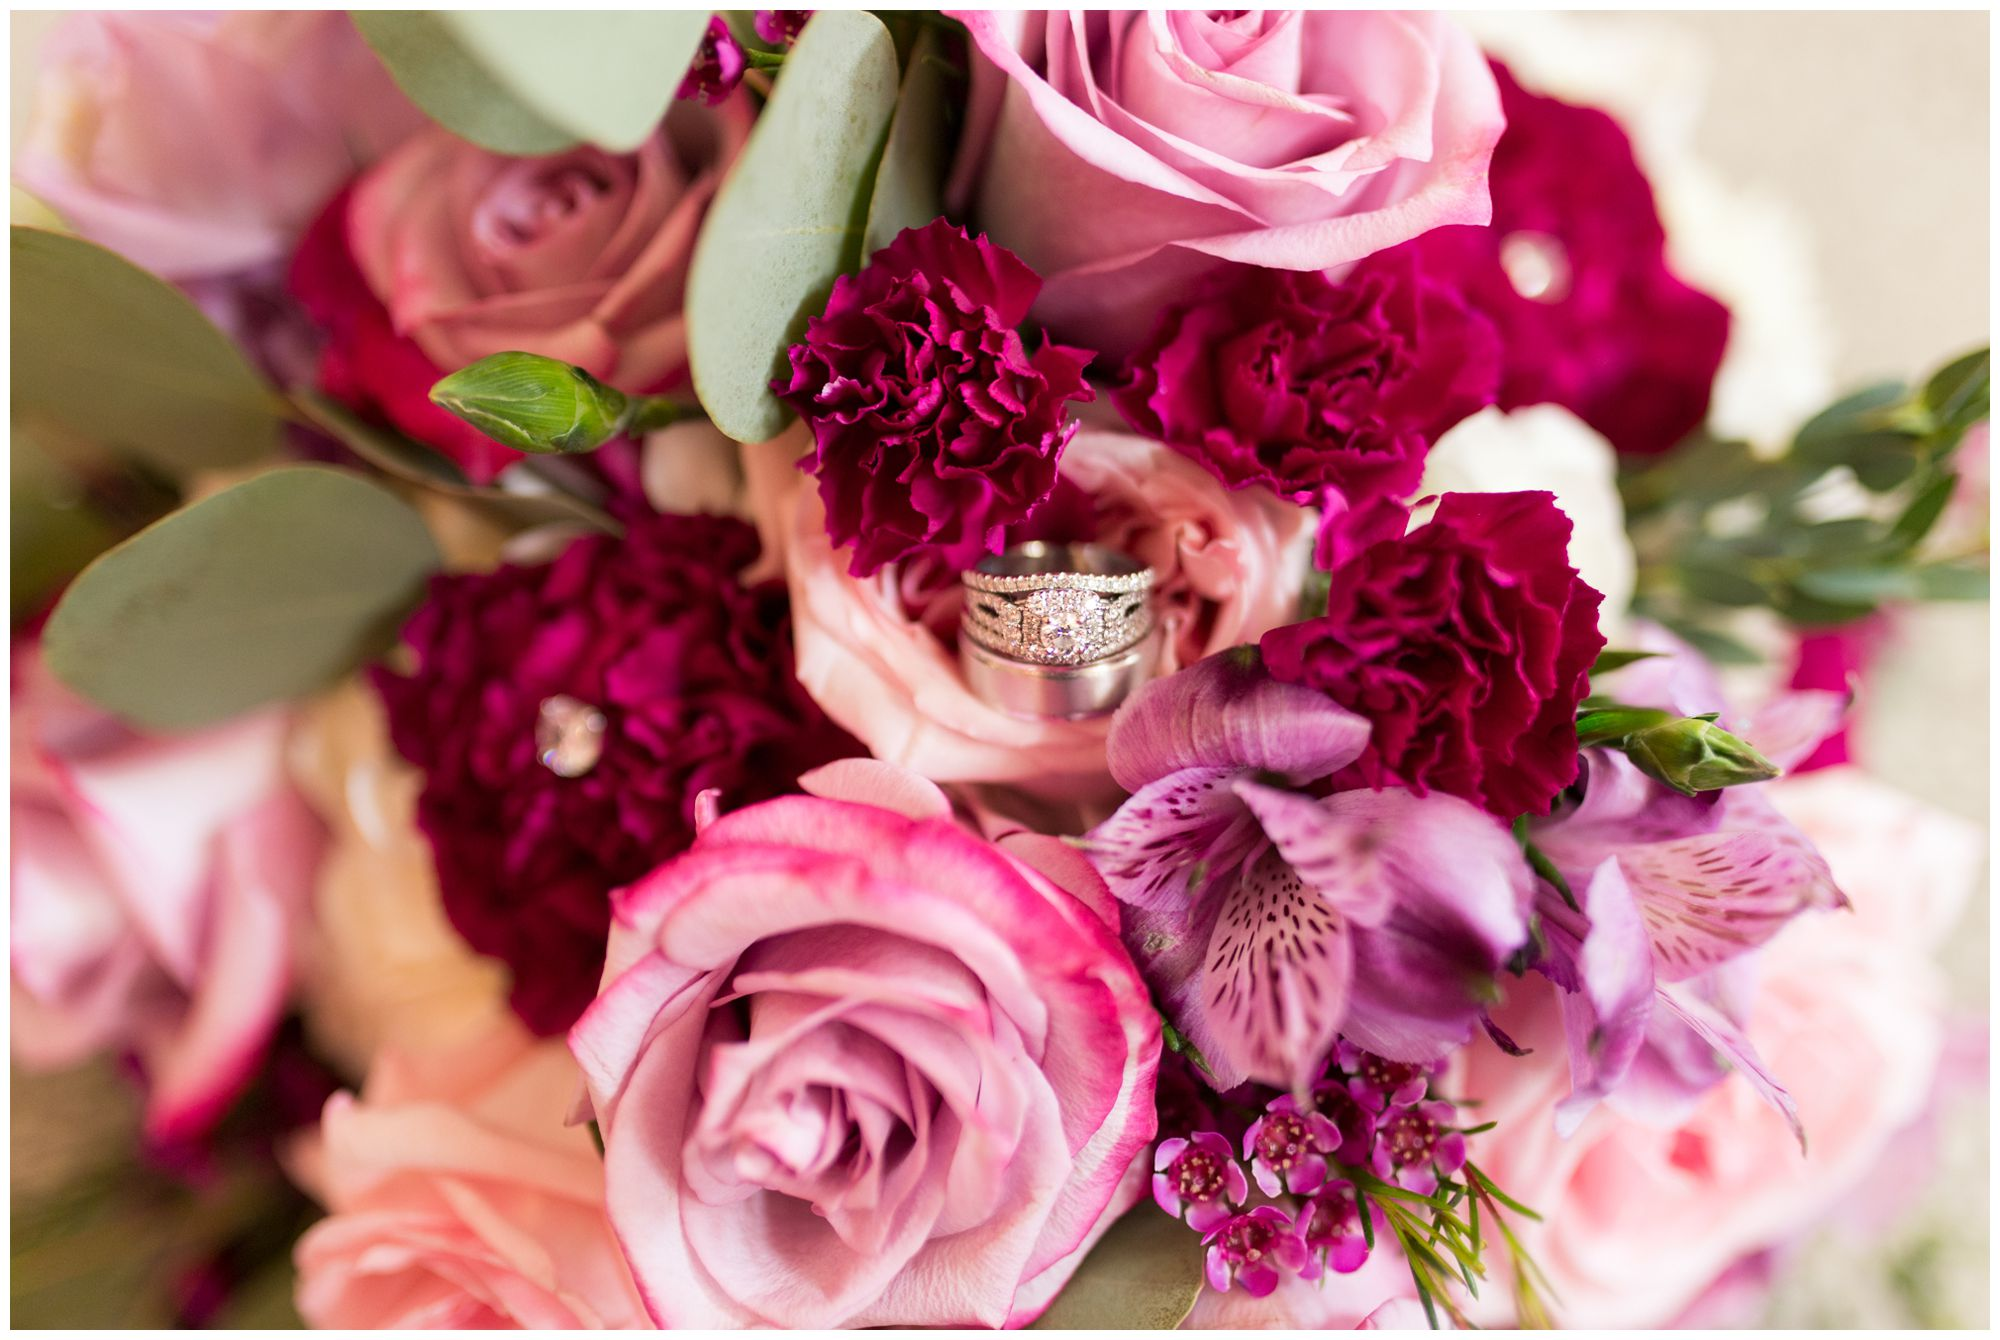 bride and groom's rings in floral bouquet at Wabash Indiana wedding